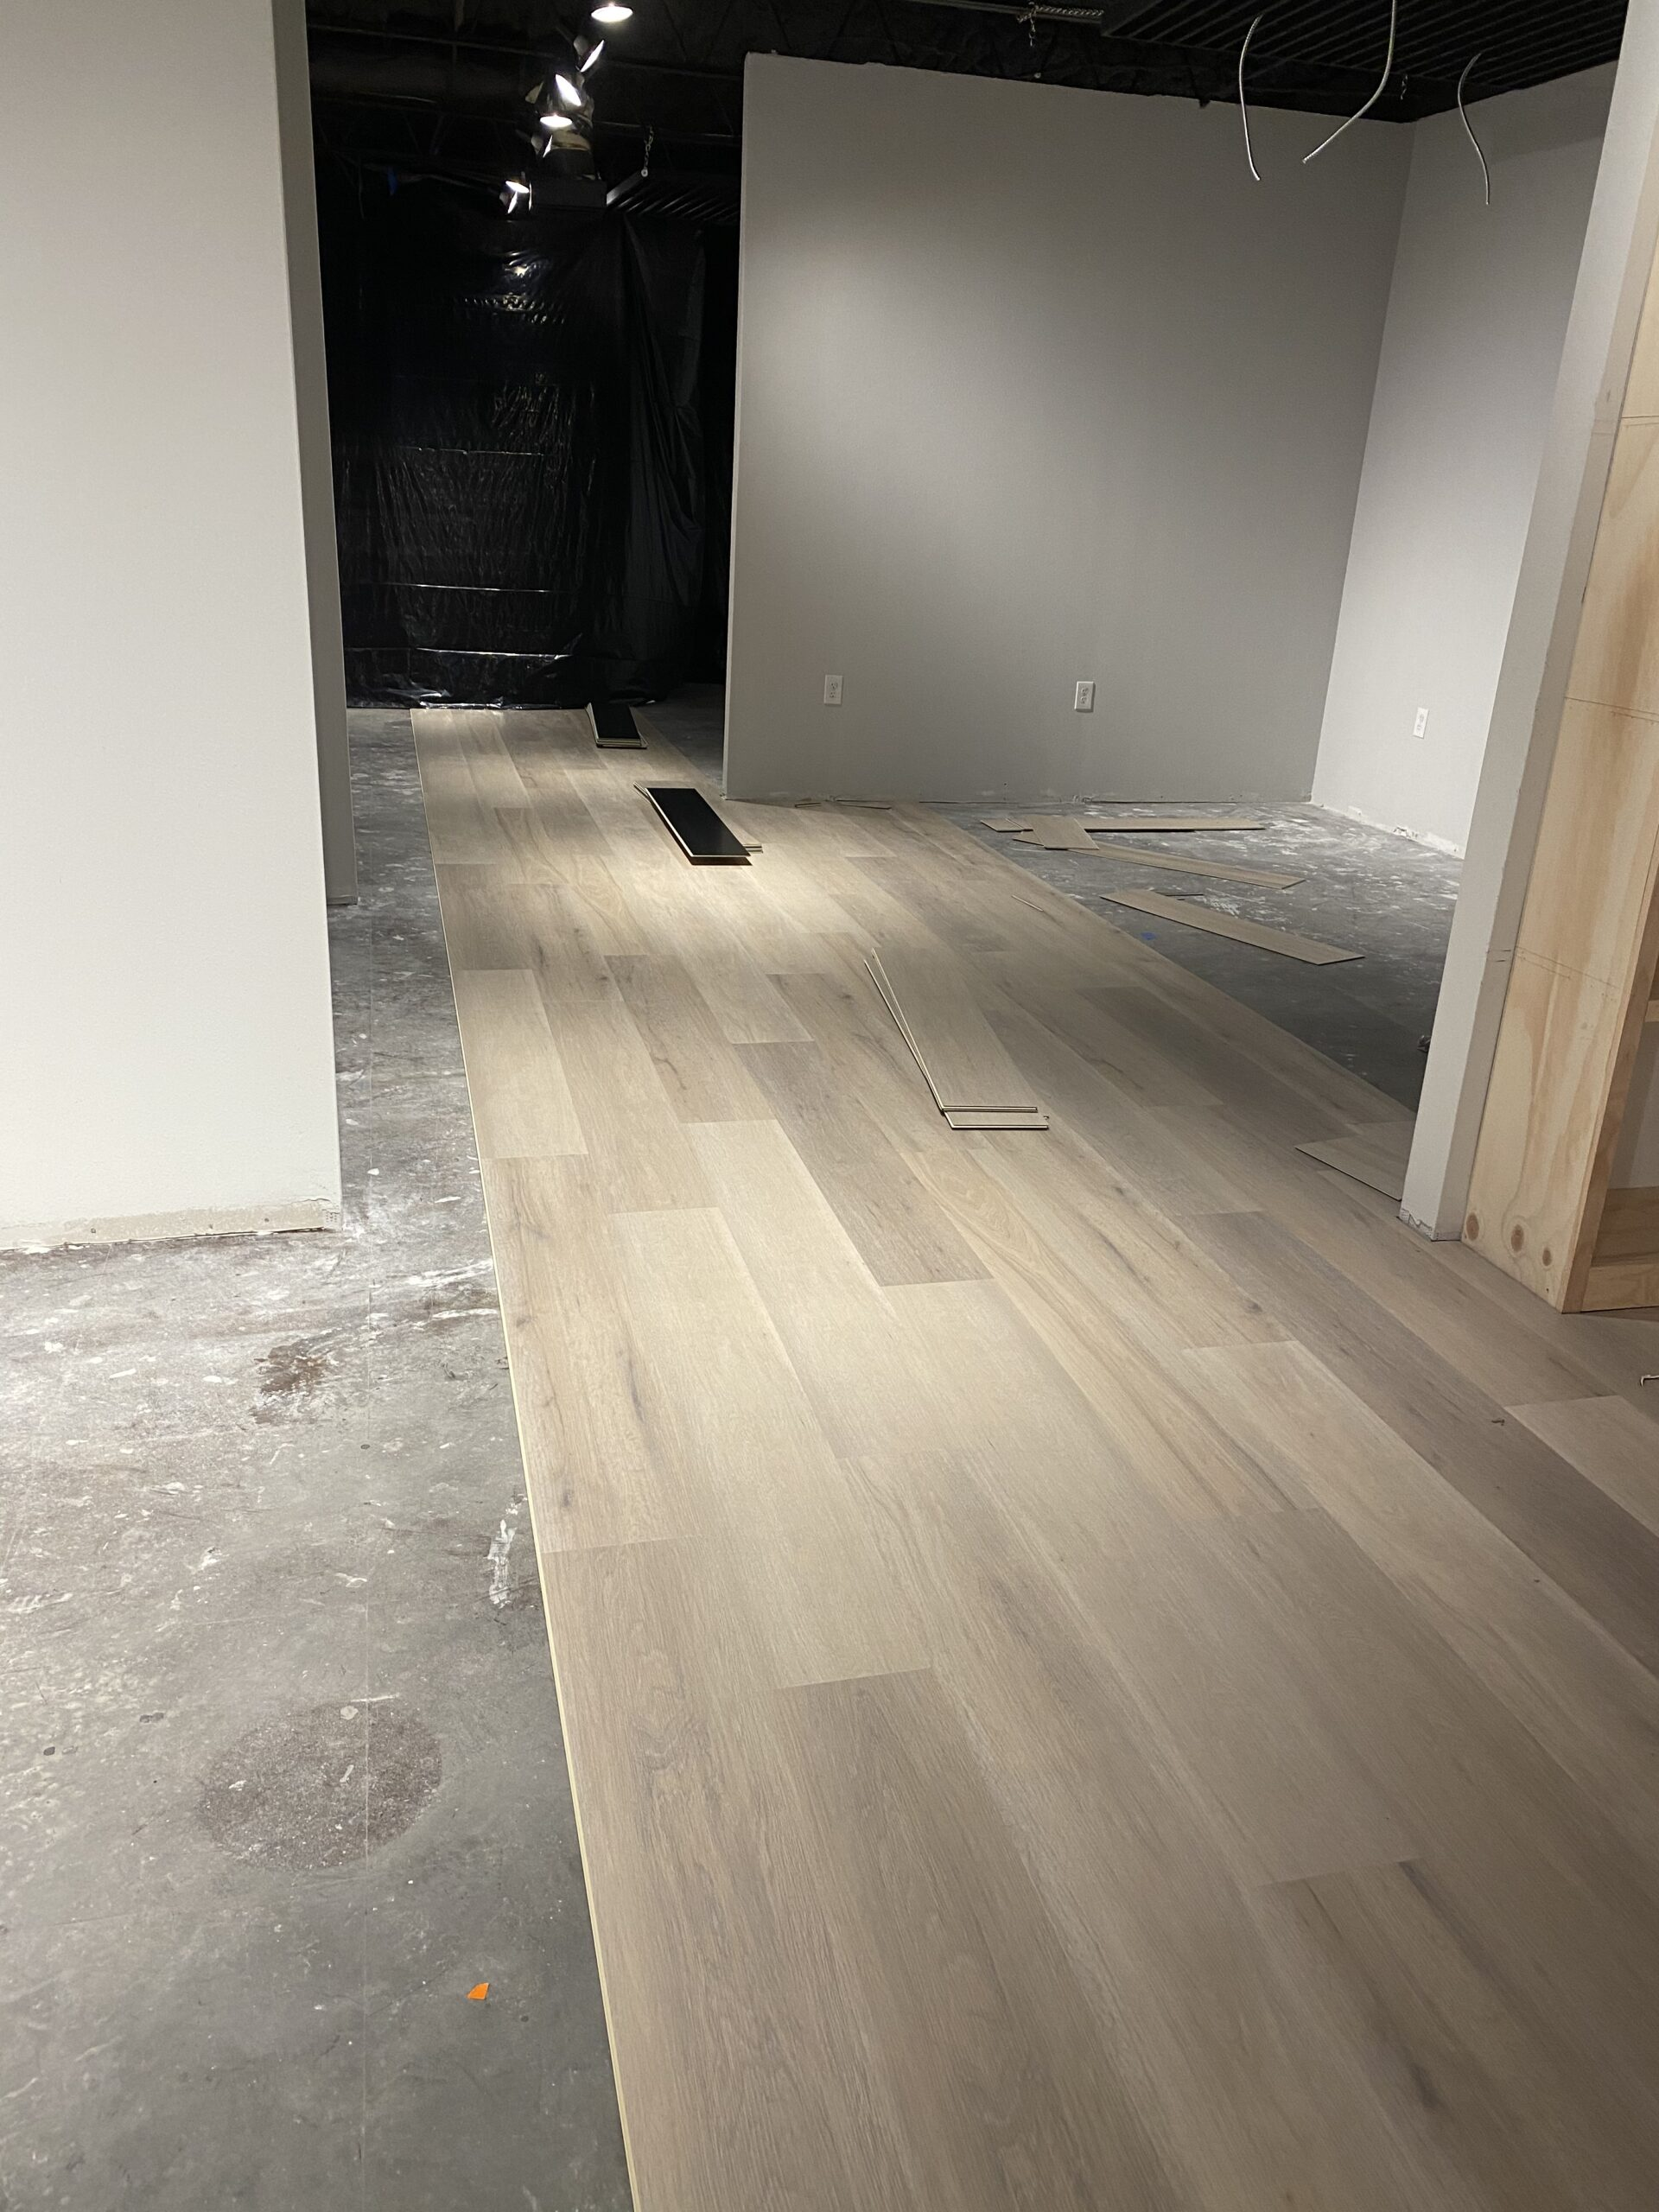 Vinyl plank light white oak flooring